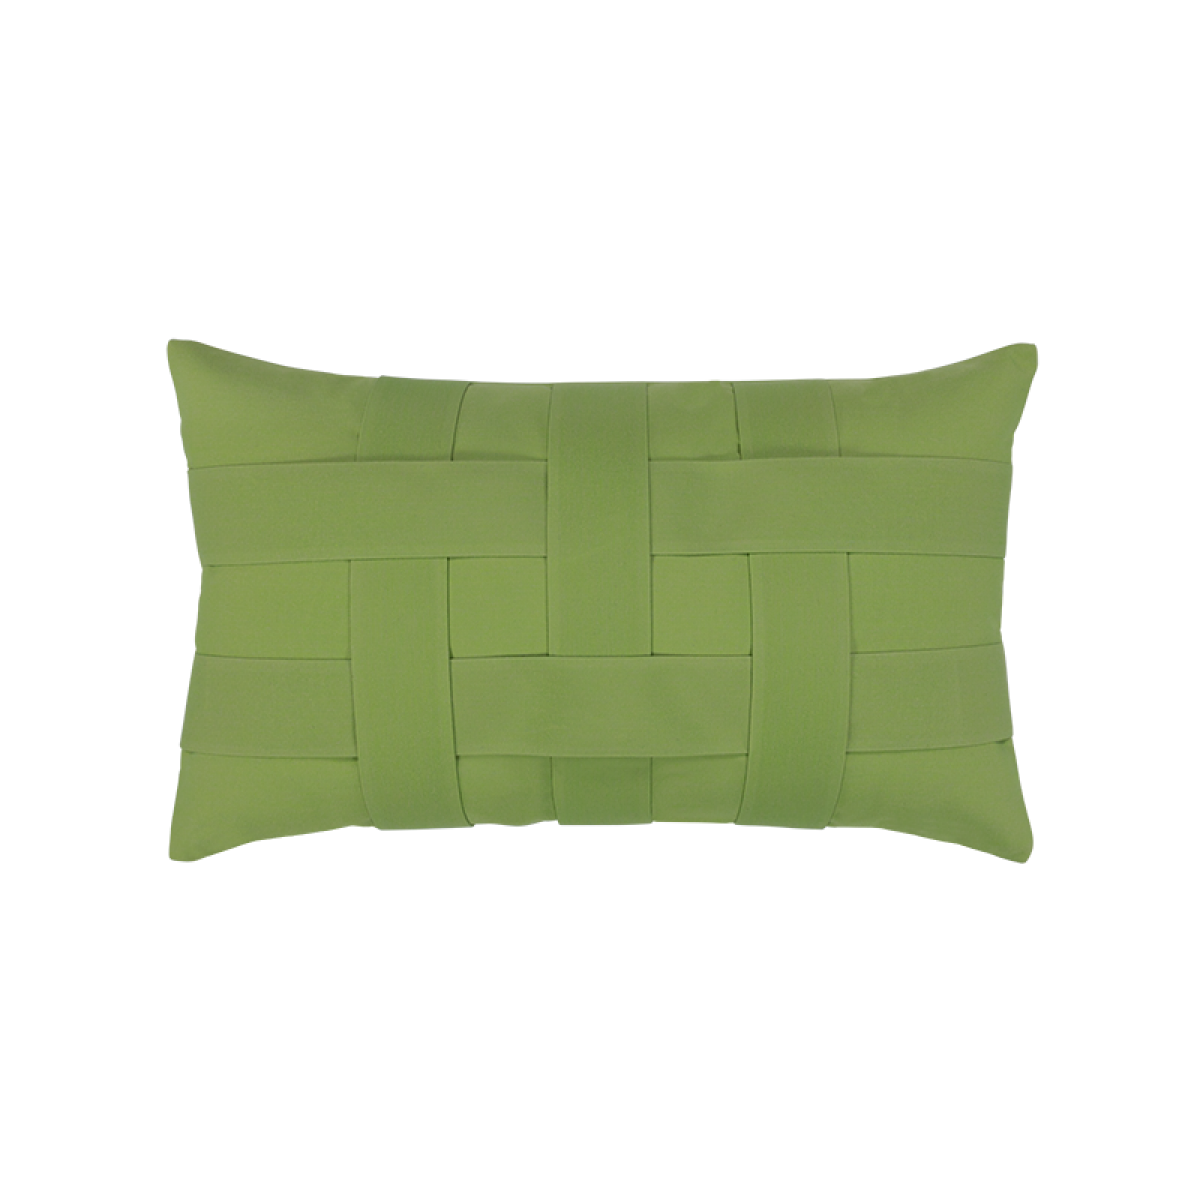 Basketweave Ginkgo Lumbar - This item will ship by 1/25